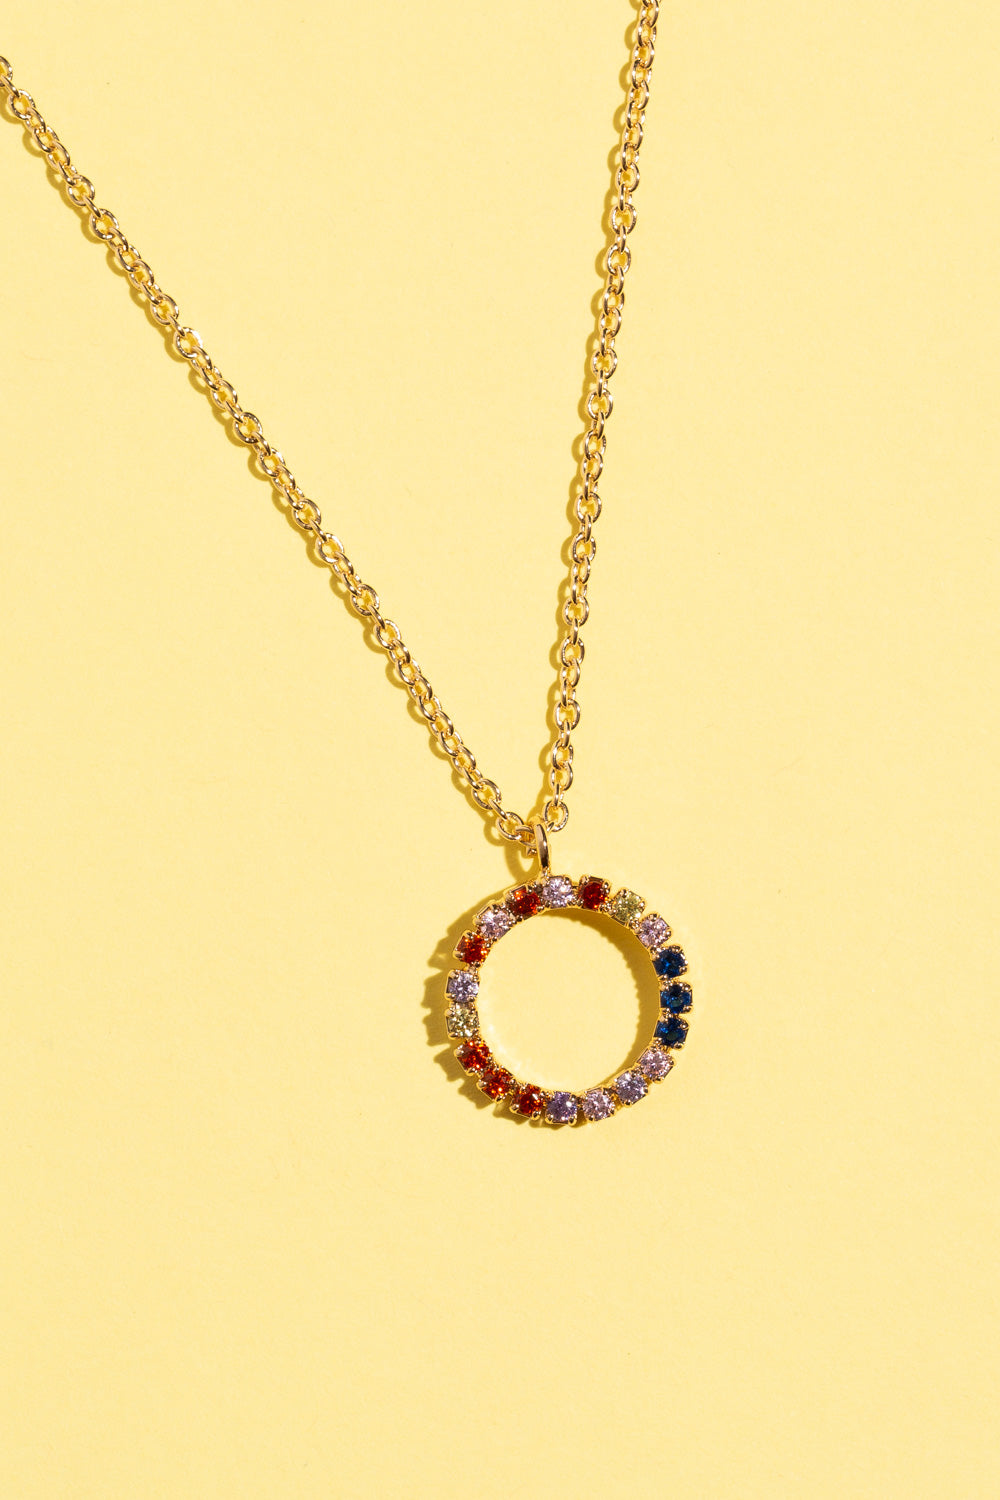 Type 1 Color Wheel Necklace